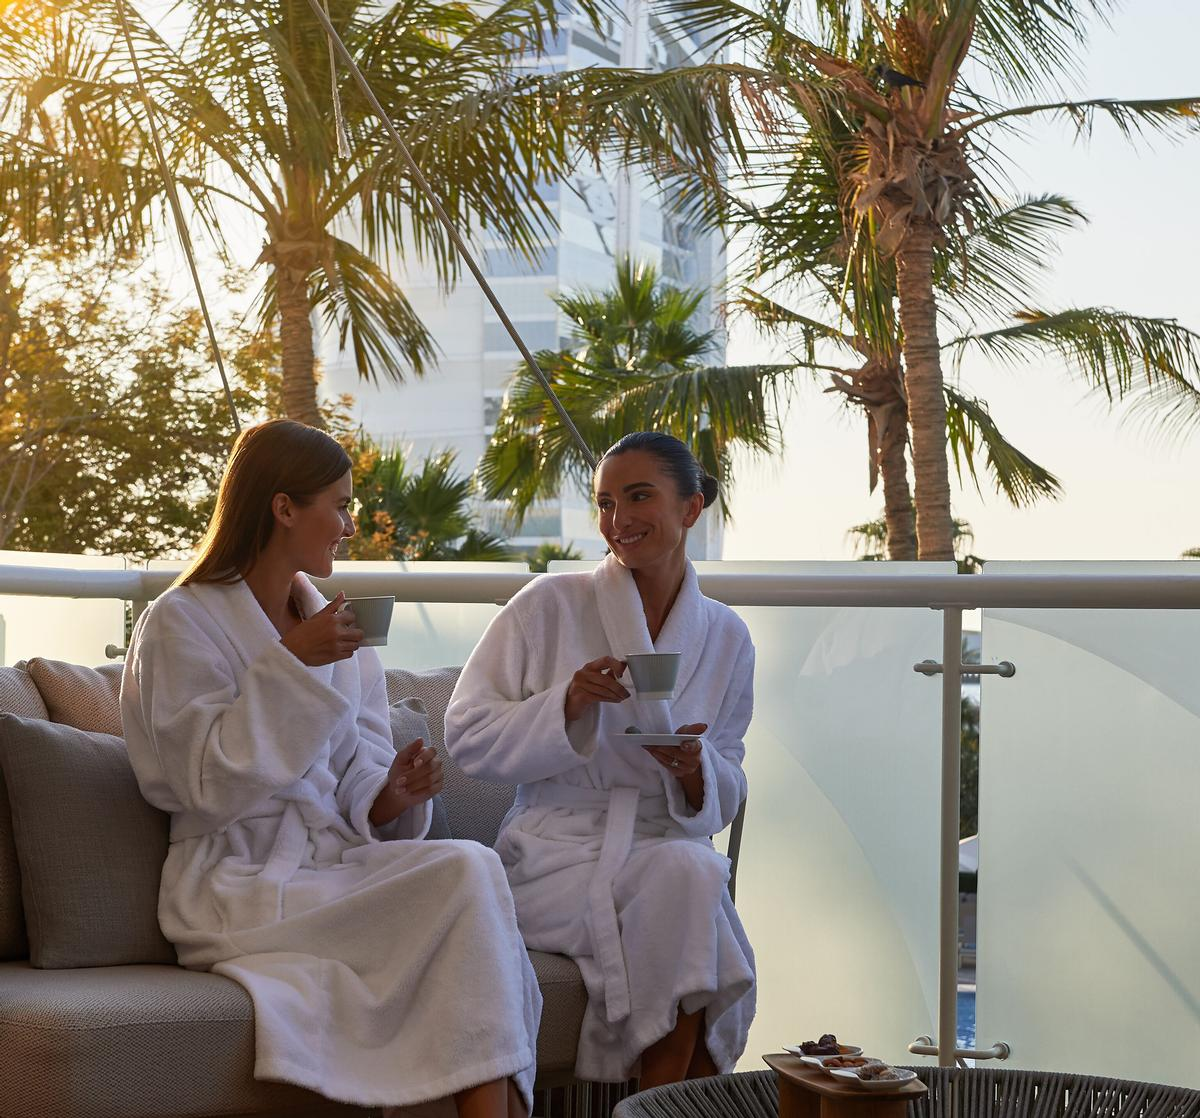 The spa offers massages and facials, as well as cryotherapy treatments